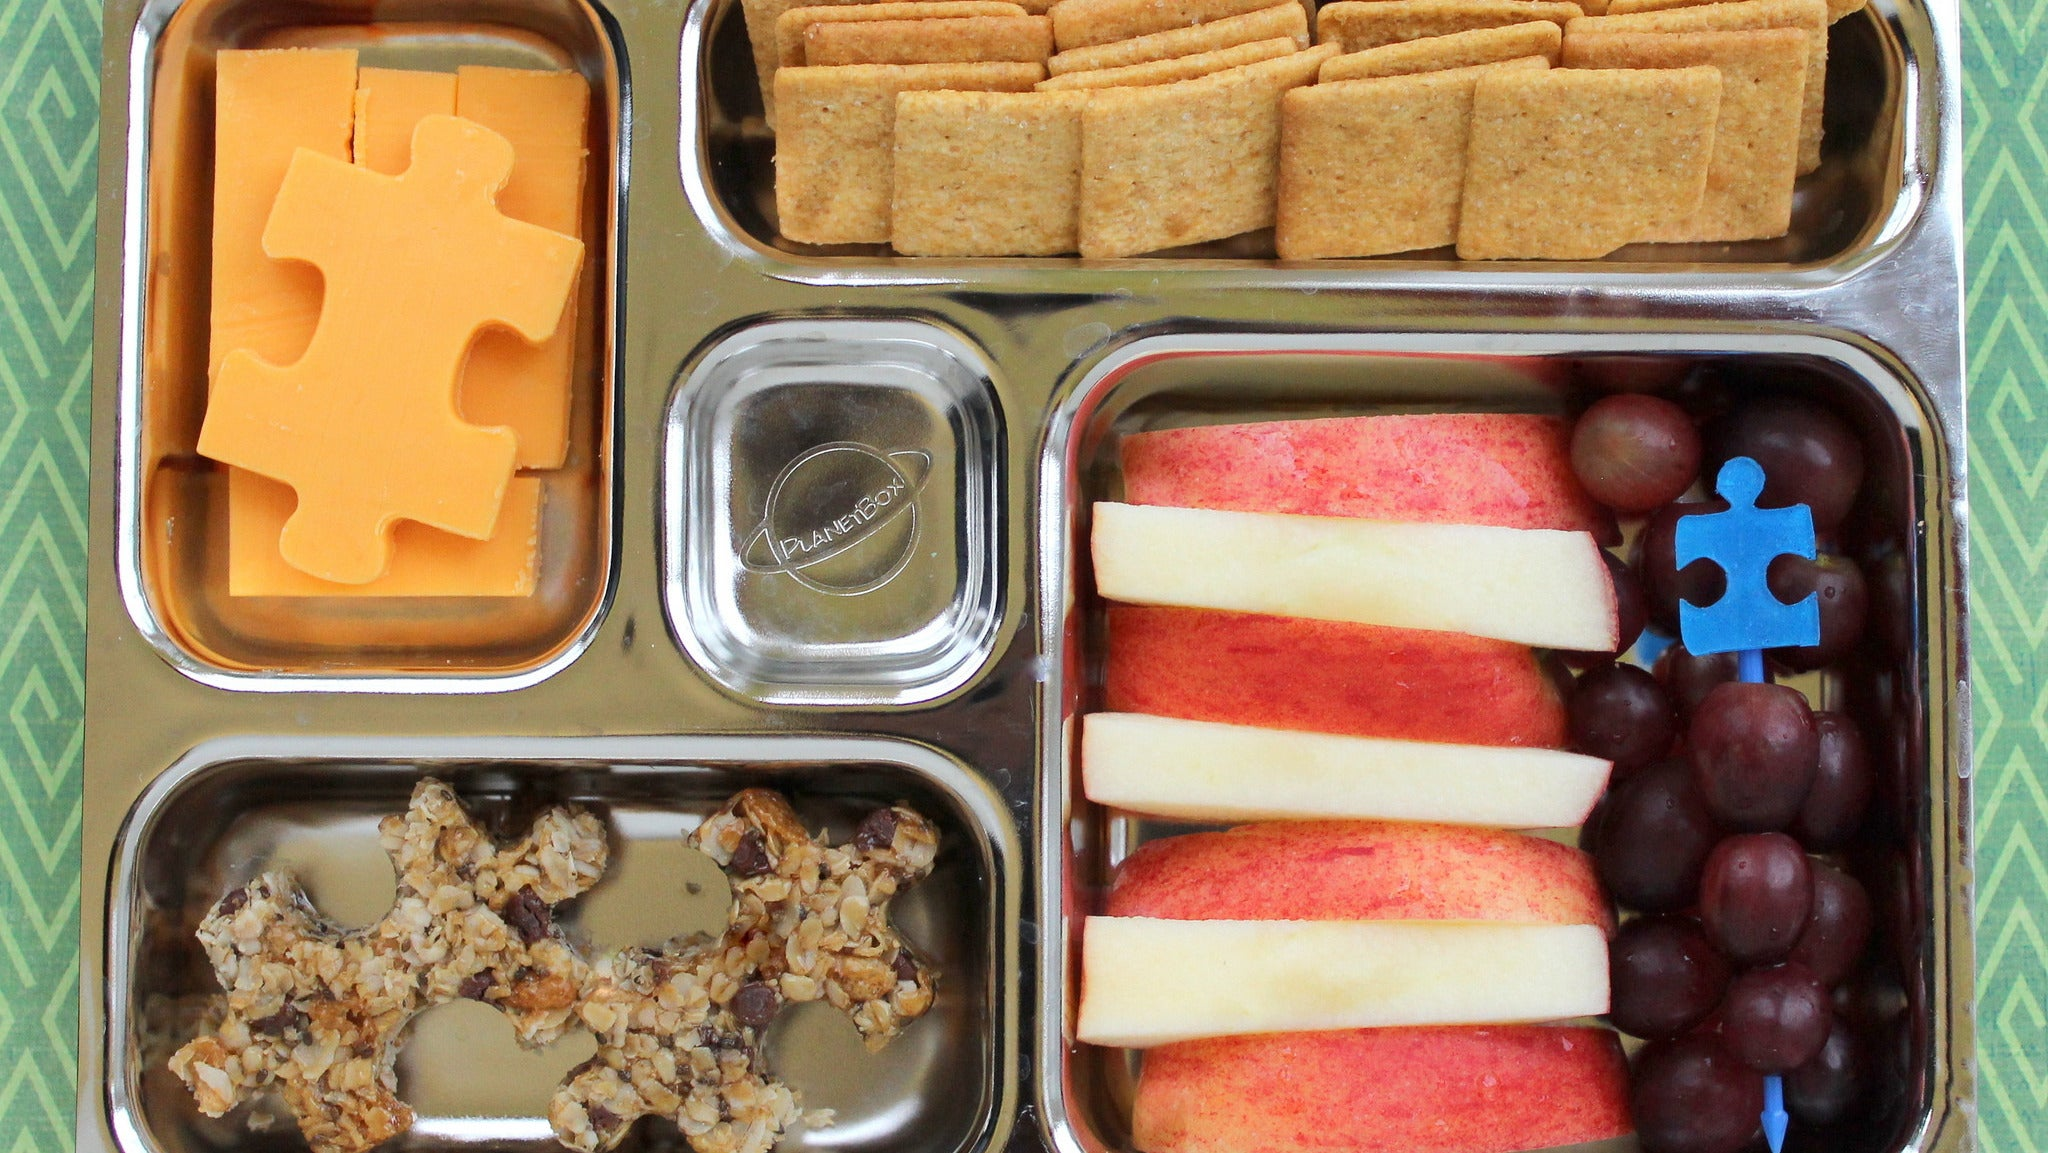 The Case For The Adult 'Lunchable'